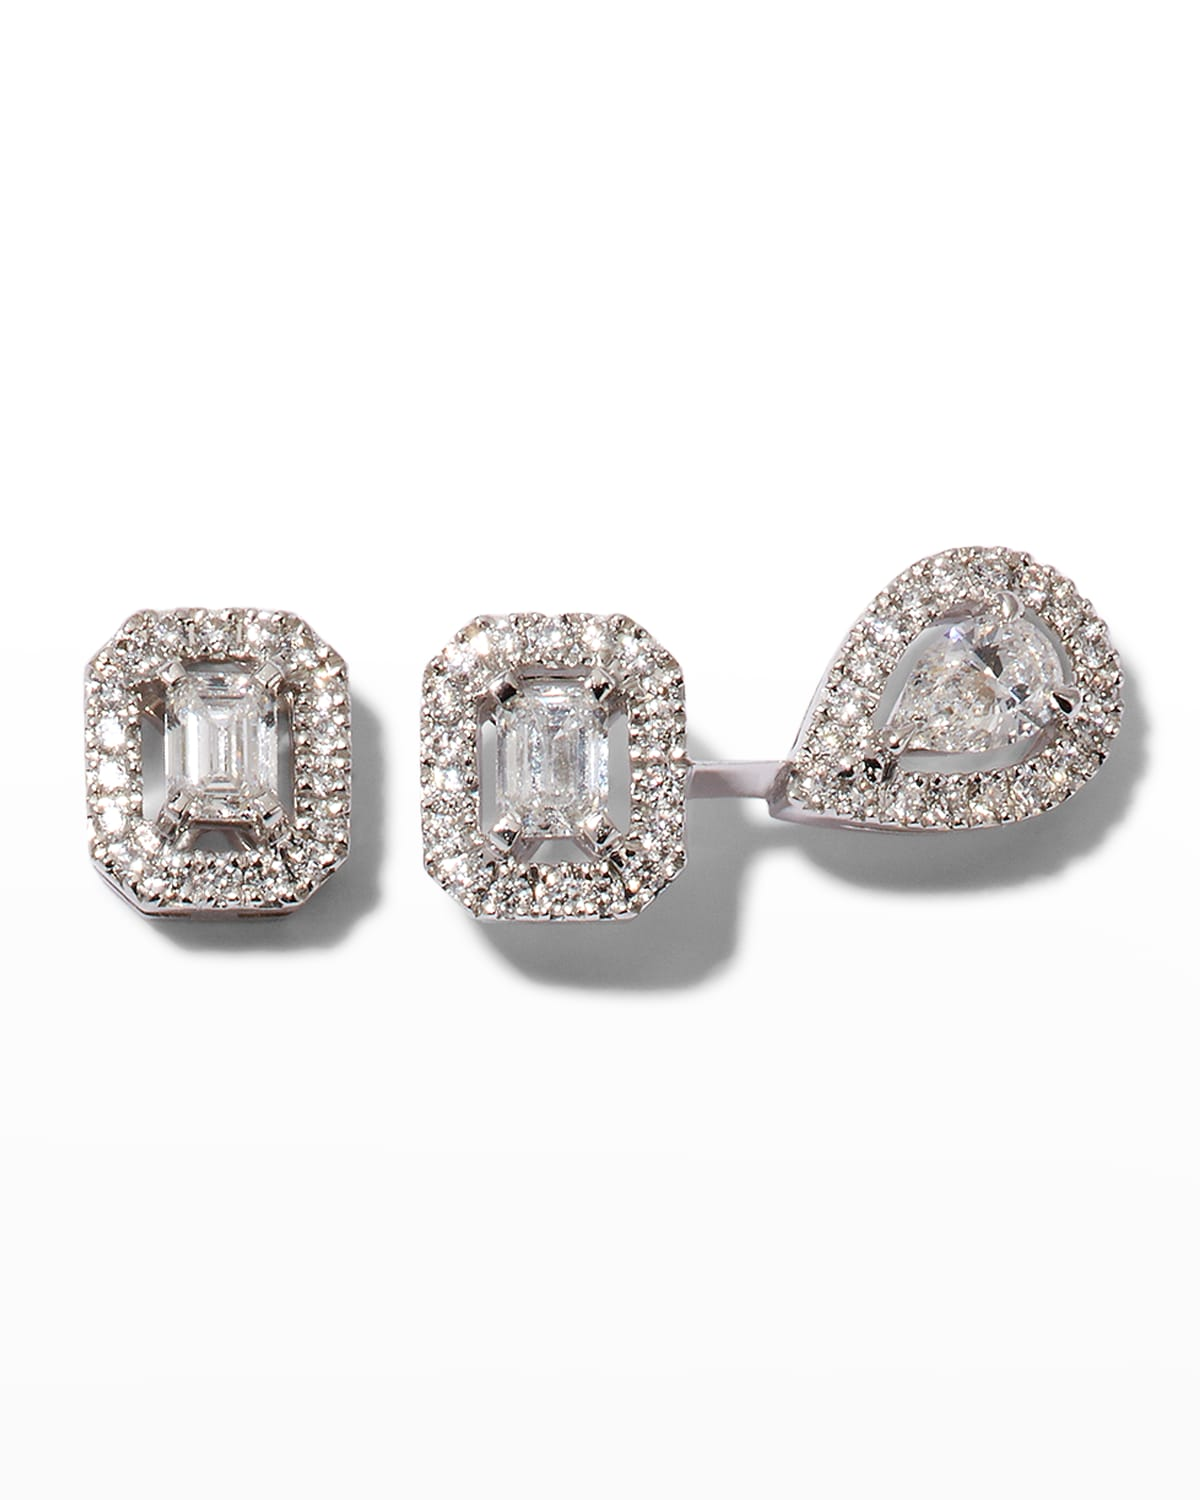 My Twin 18k White Gold 1 and 2 Diamond Earrings